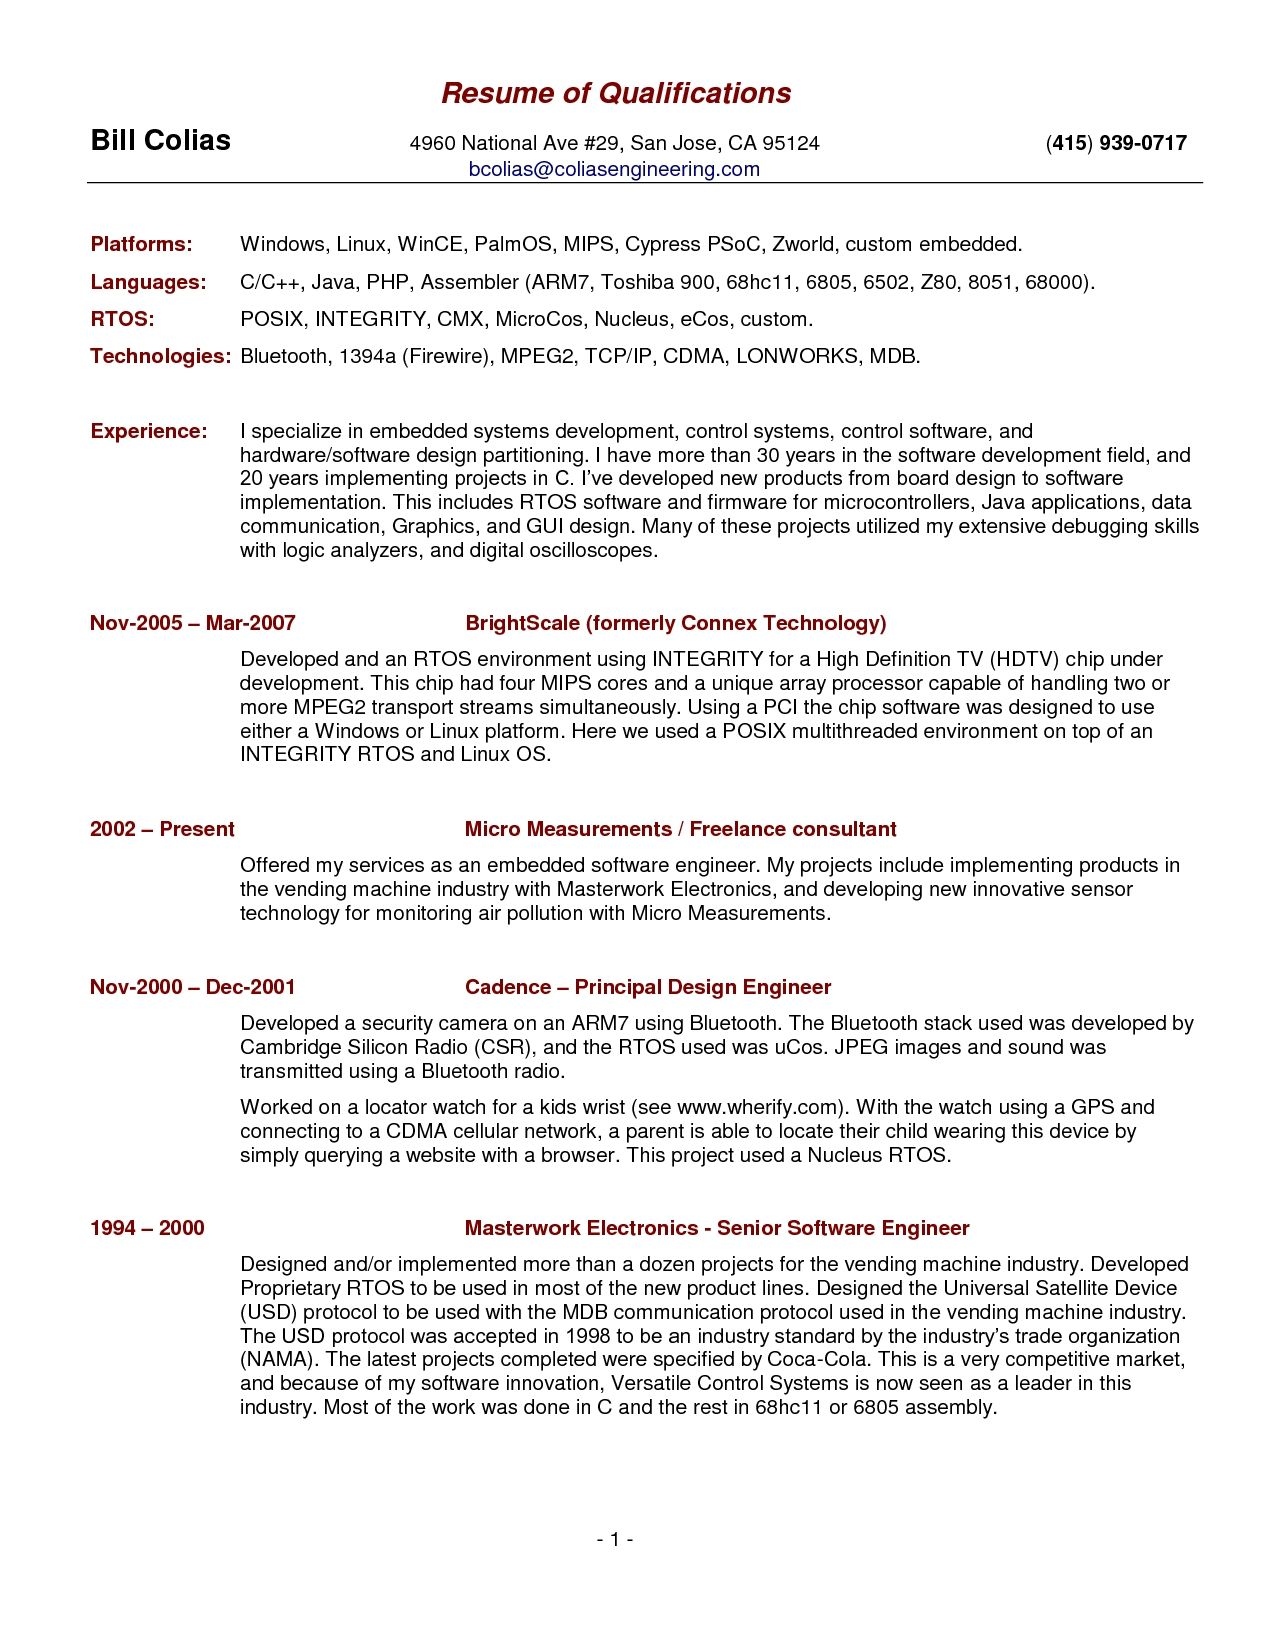 Free Resume Template Summary Qualifications Resume Examples